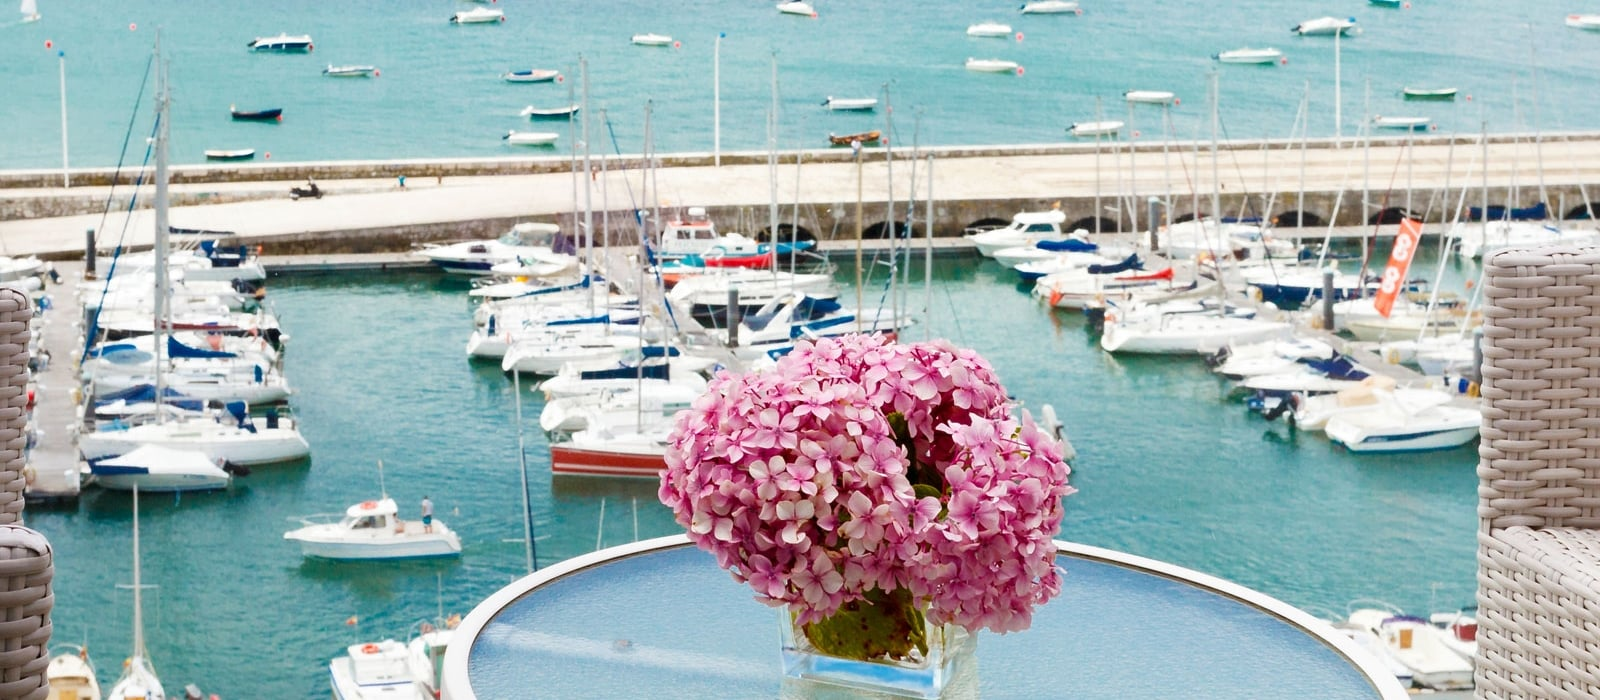 Offers Hotel Vincci Puertochico Santander - Book now and save!. -5%